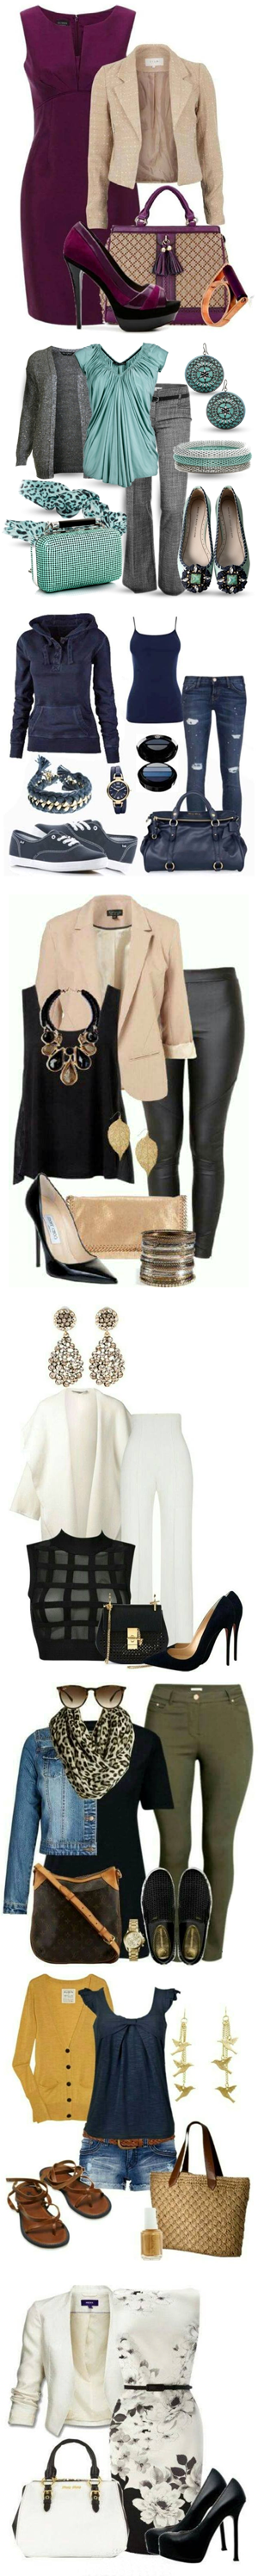 Super Styles Fashion, Style, Polyvore image